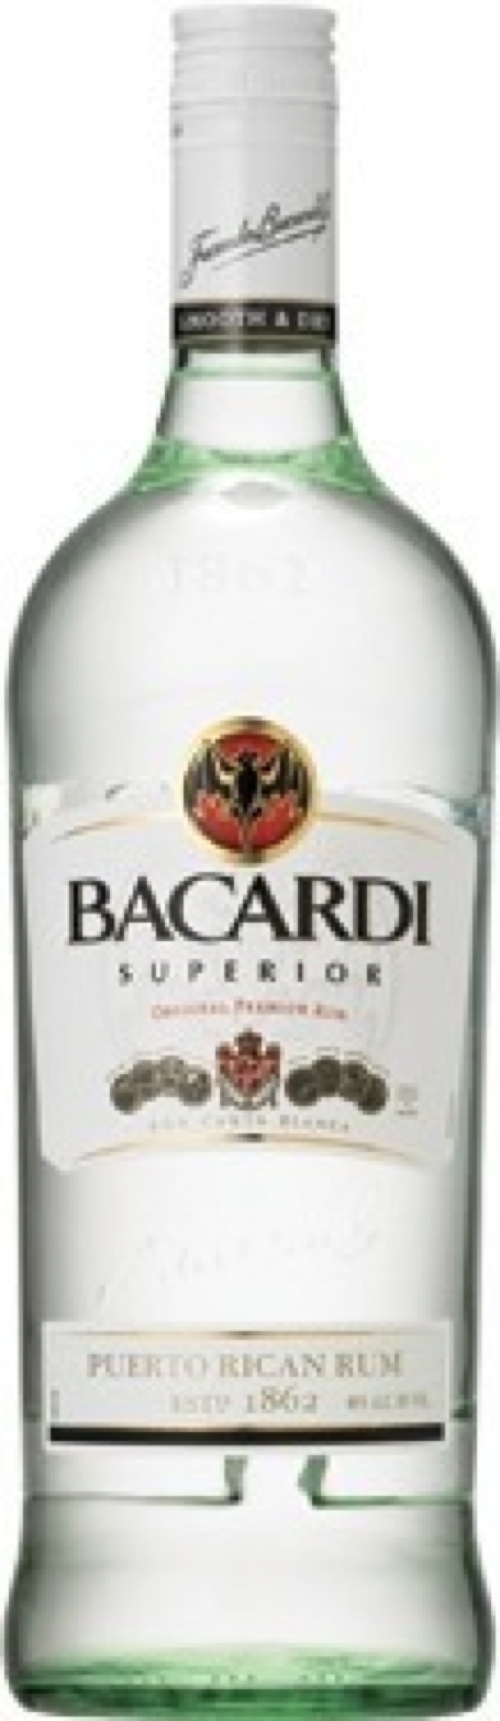 Superior Premium Rum by Bacardi in Crazy, Stupid, Love.